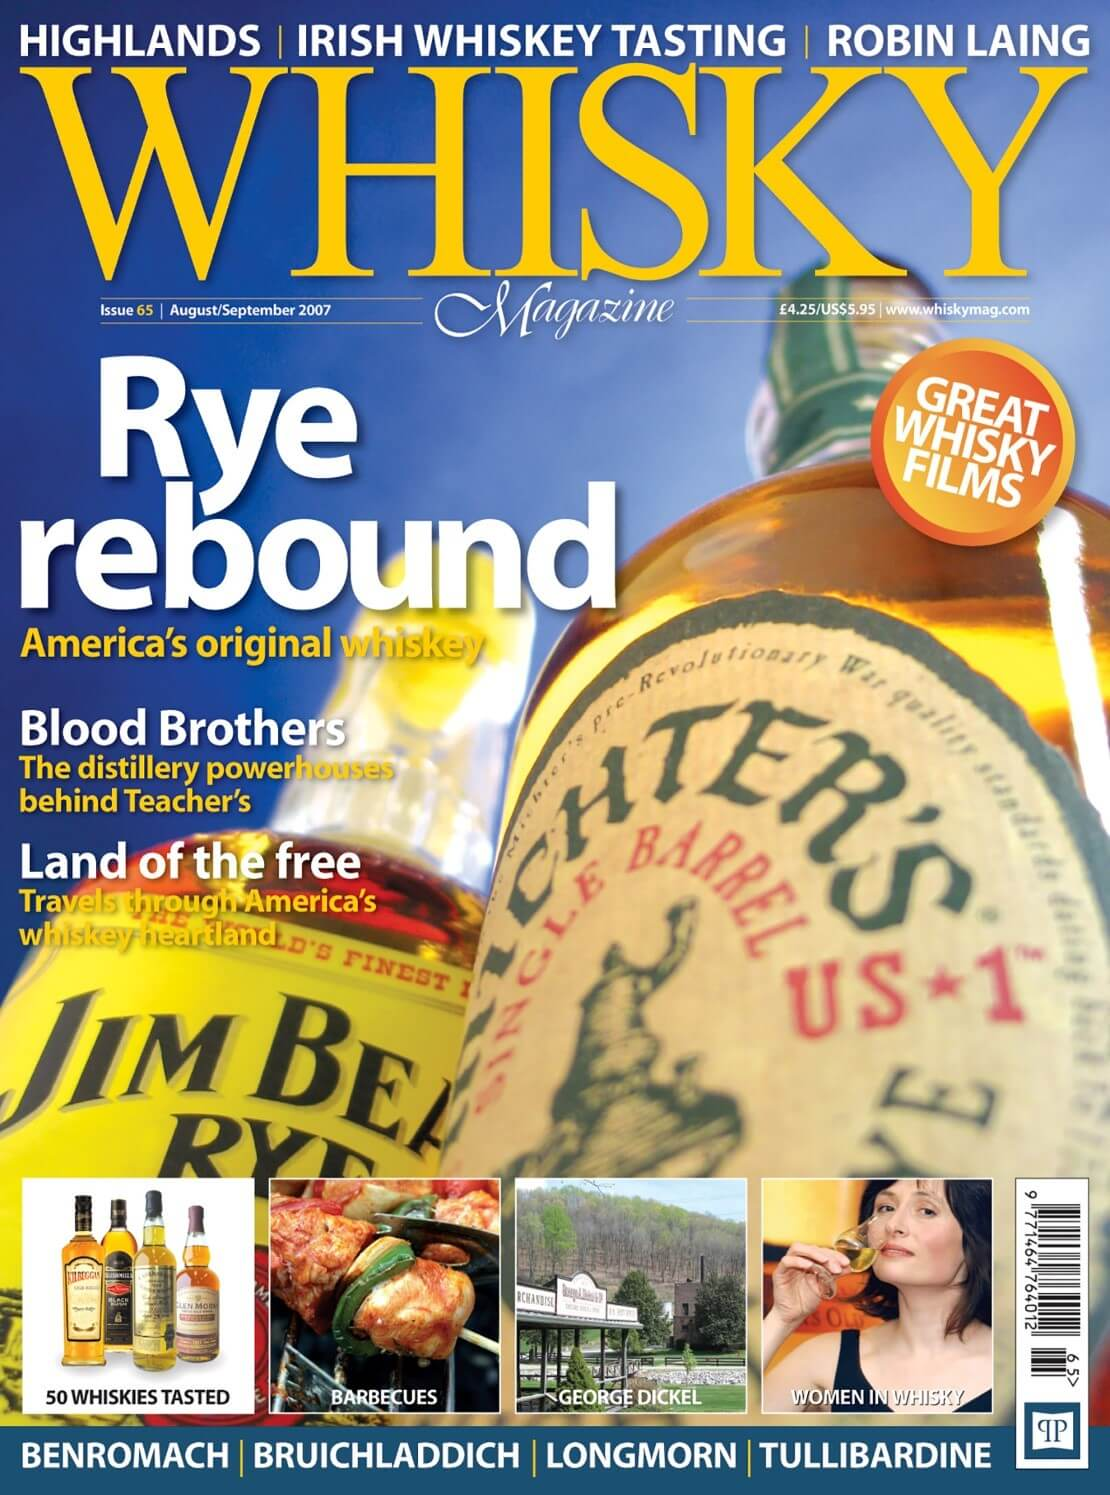 Rye rebound Blood Brothers Teacher's Americas whisky heartland Barbecues Woman in whisky